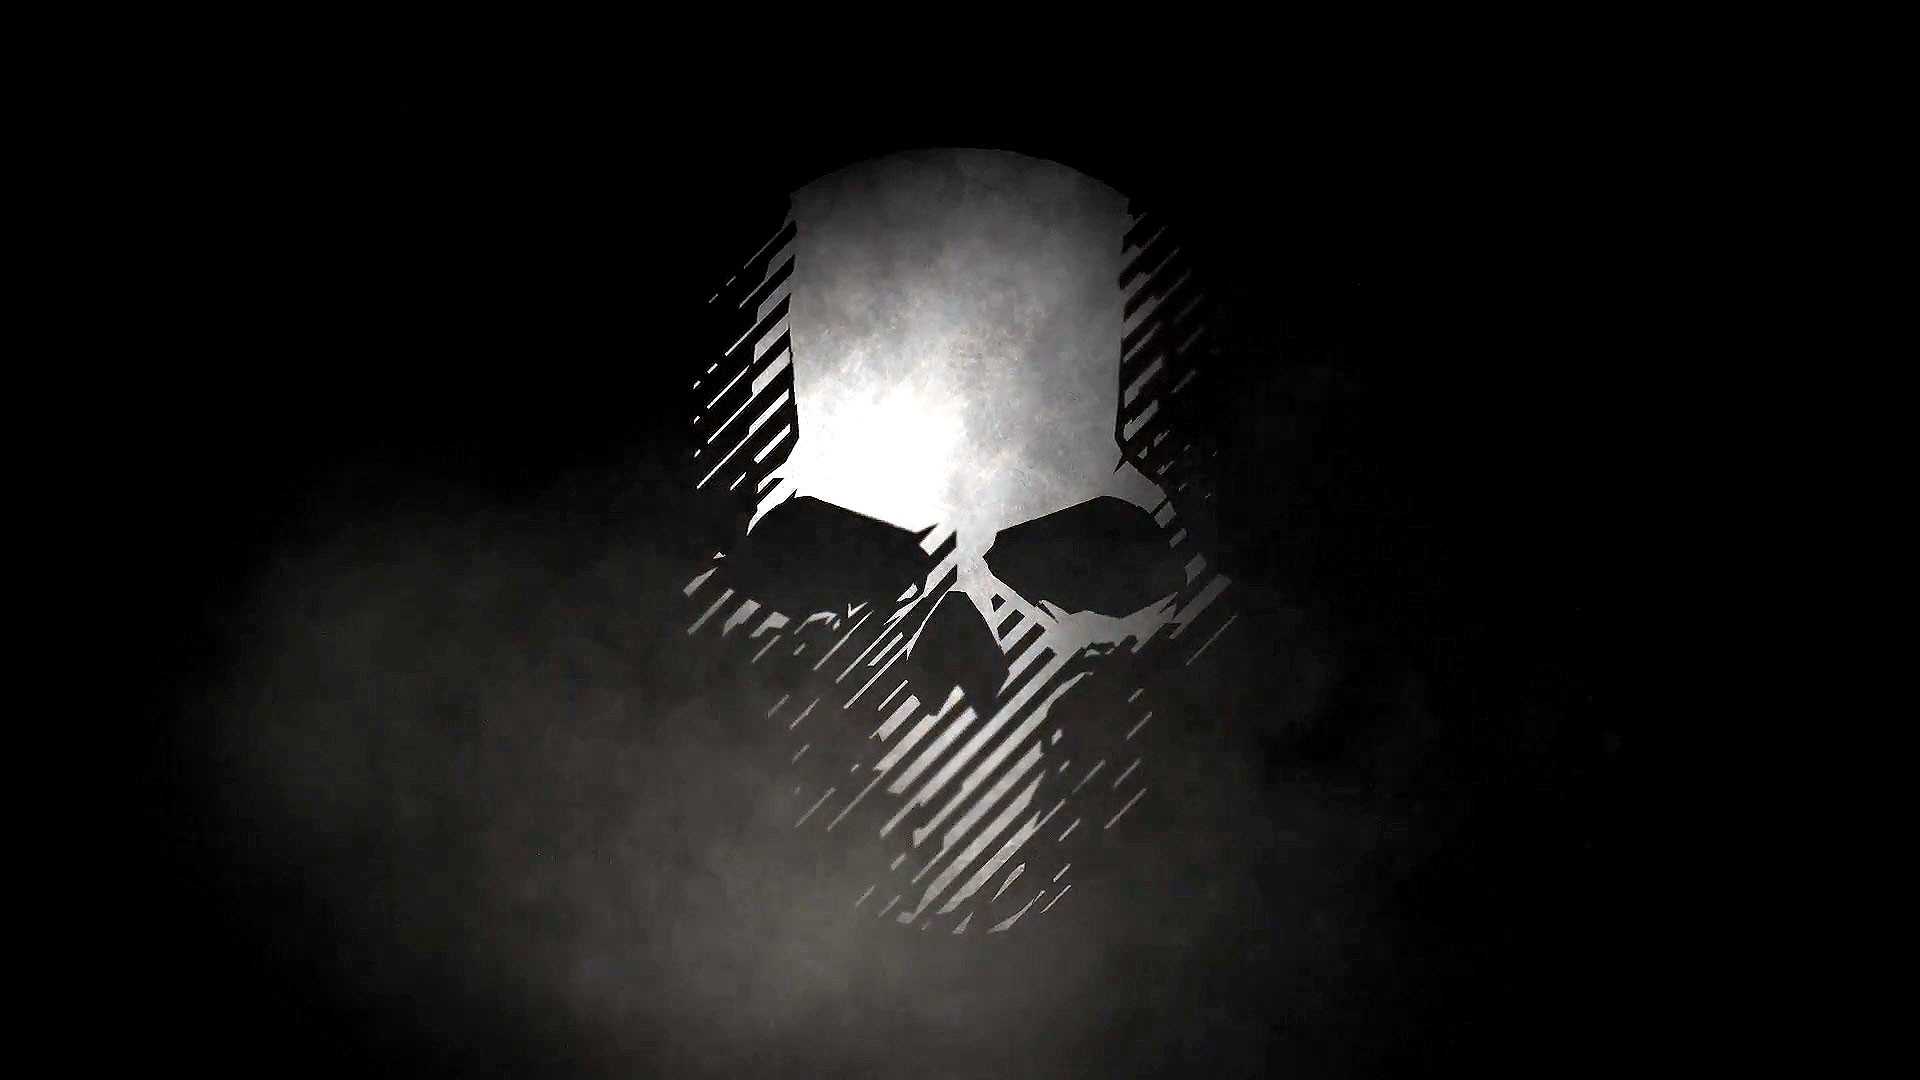 Don T Tread On Me Iphone 6 Wallpaper Black And White Skulls Wallpaper 59 Images